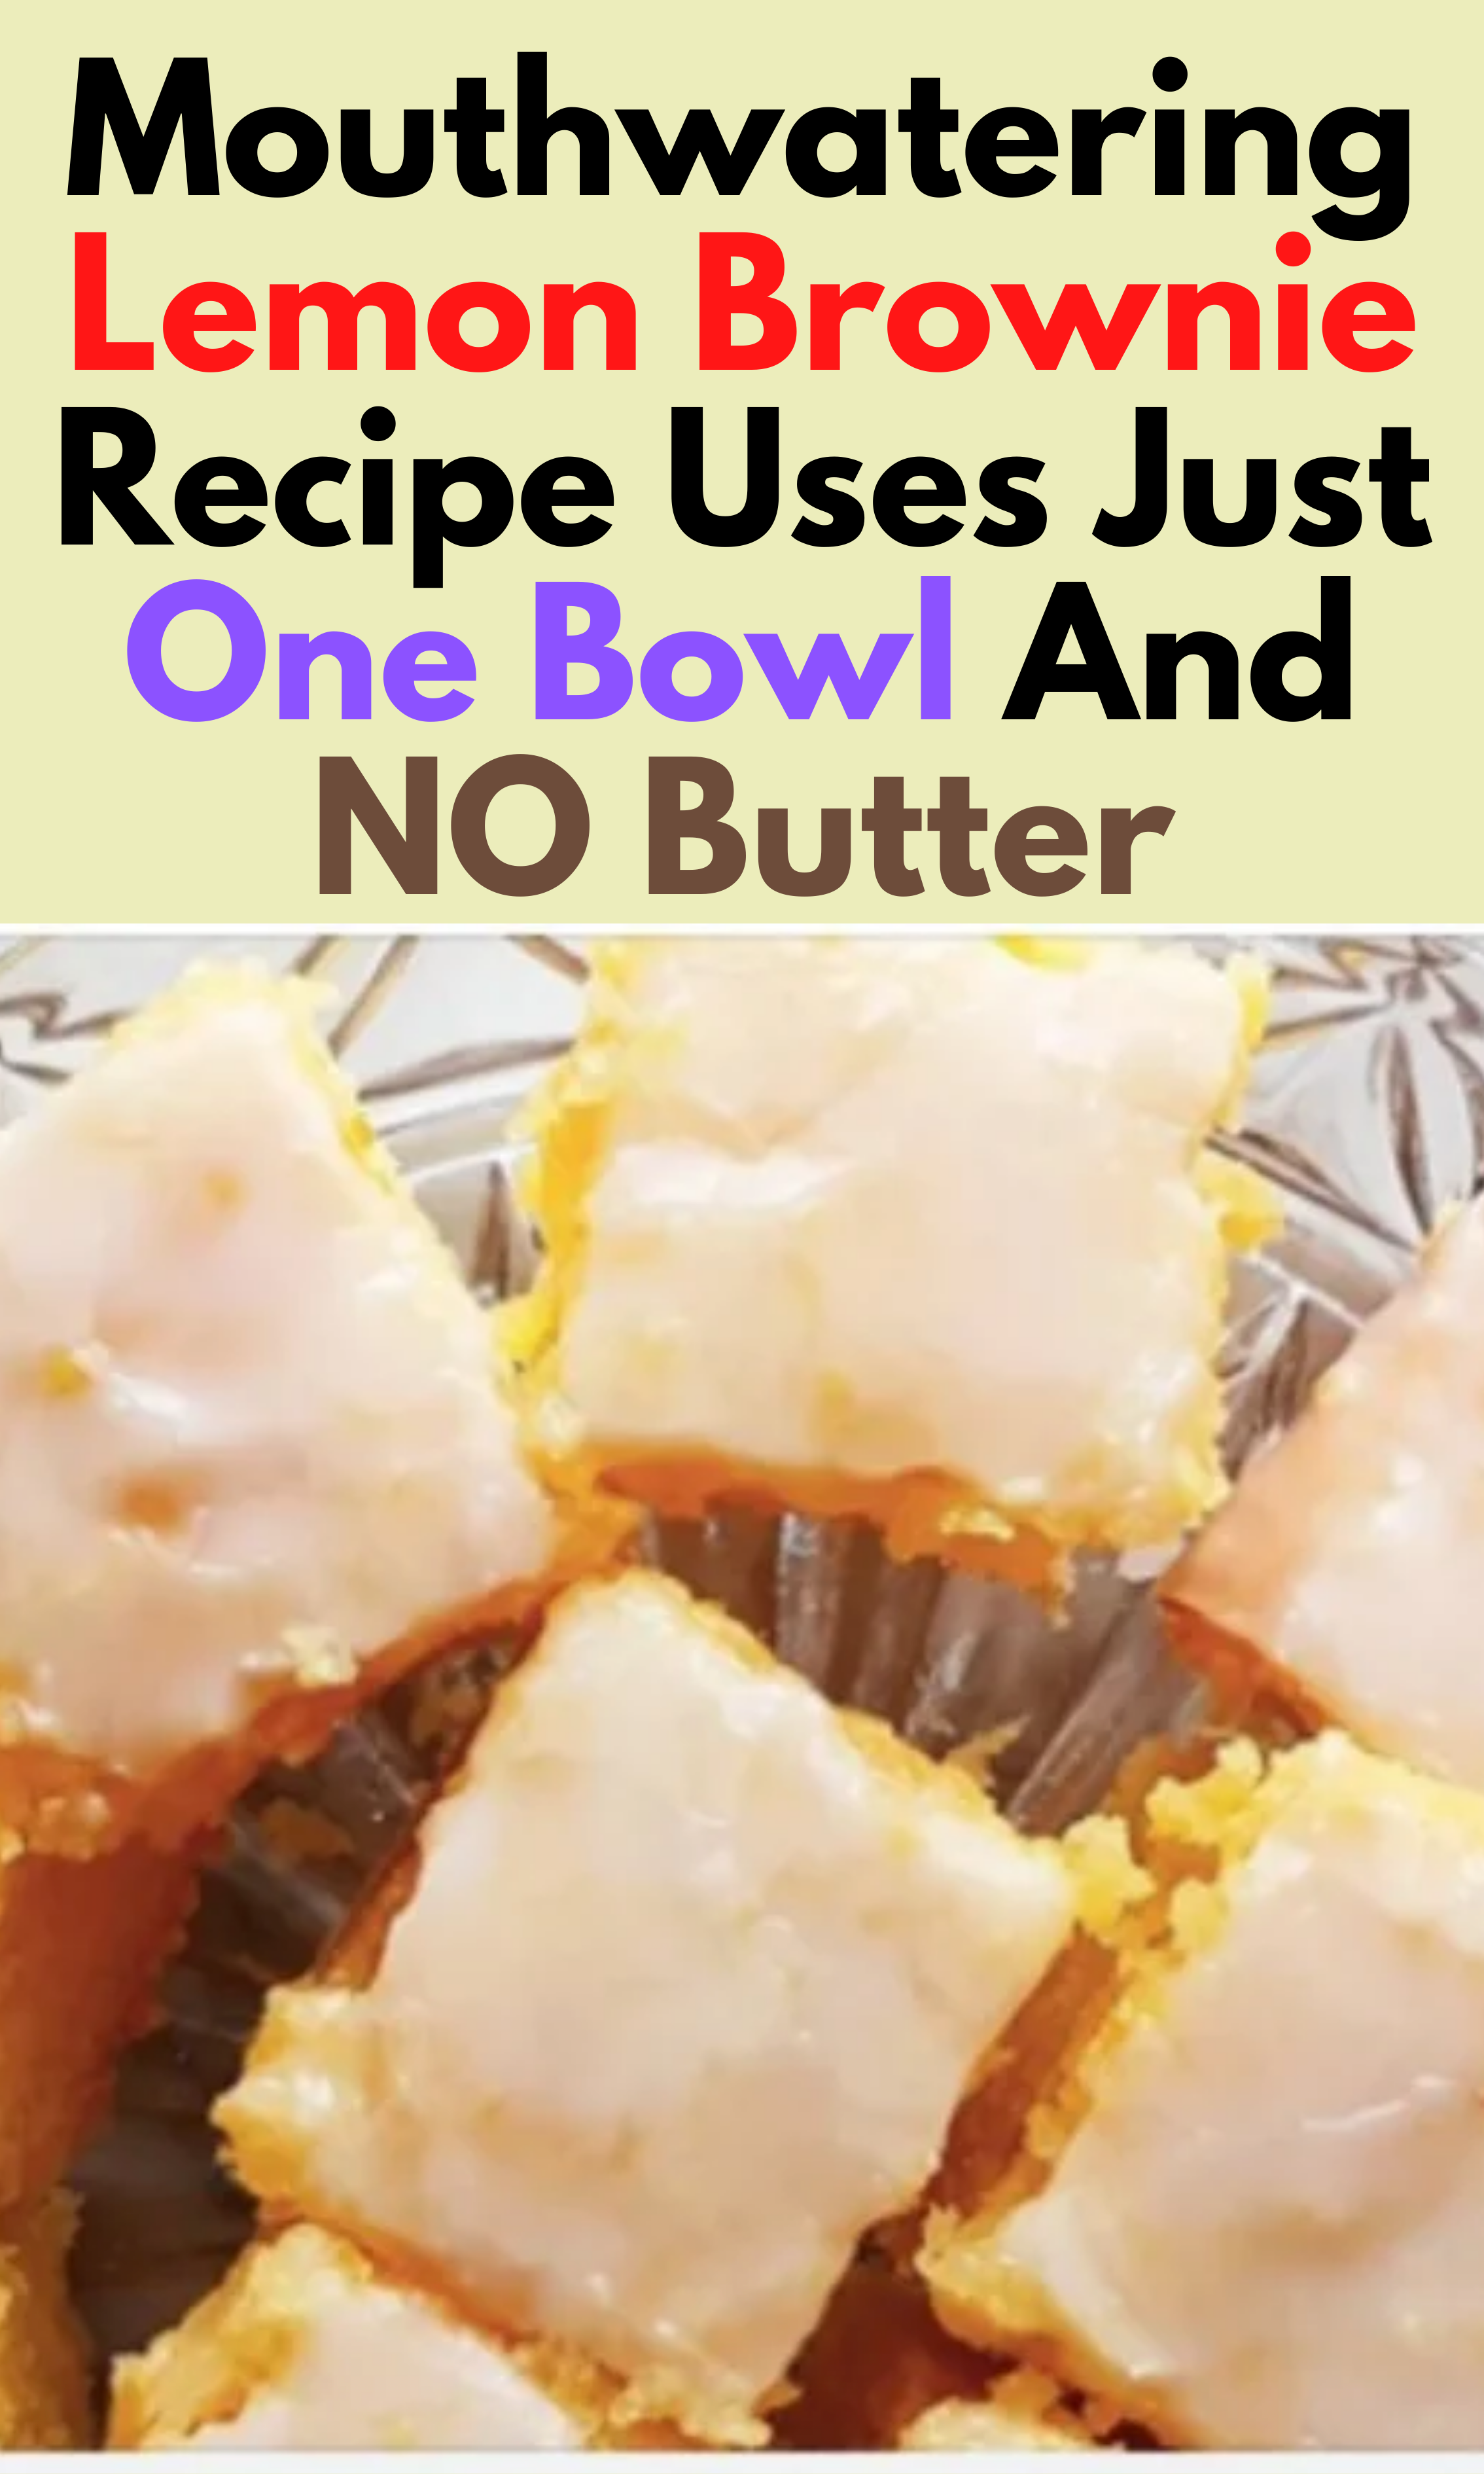 Mouthwatering Lemon Brownie Recipe Uses Just One B